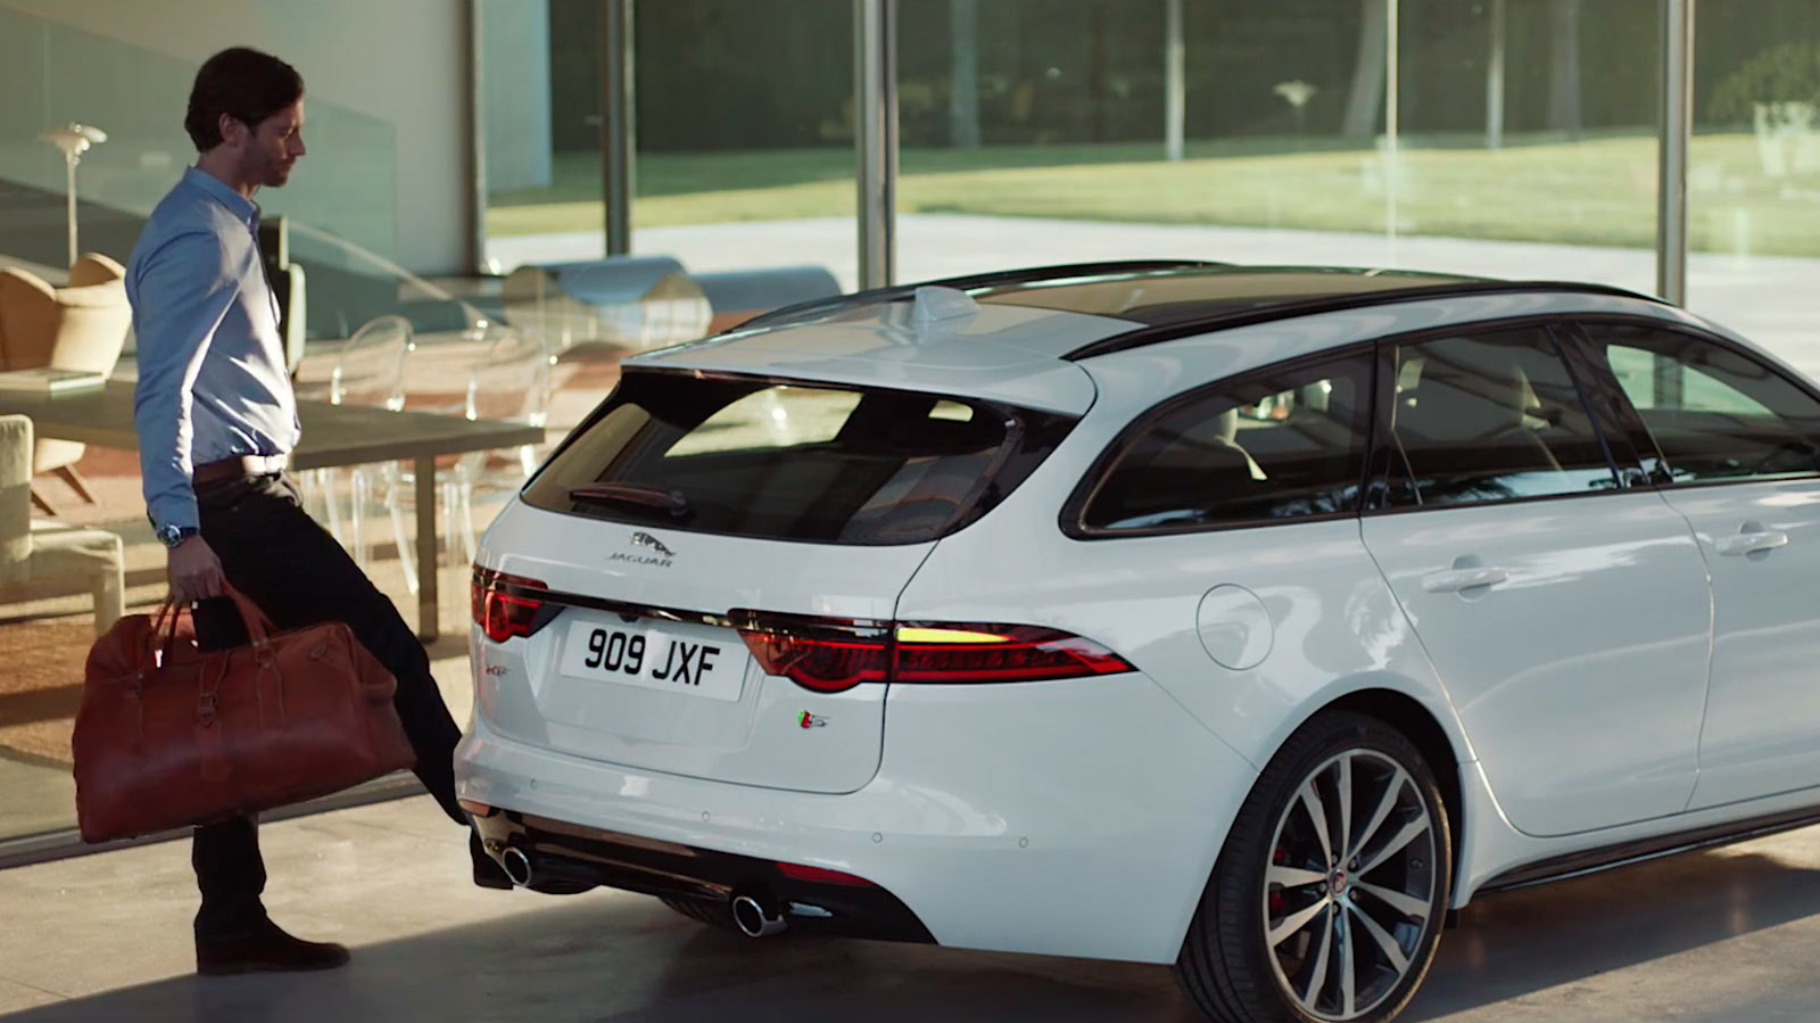 Jaguar XF gesture tailgate feature being demonstrated by a man.